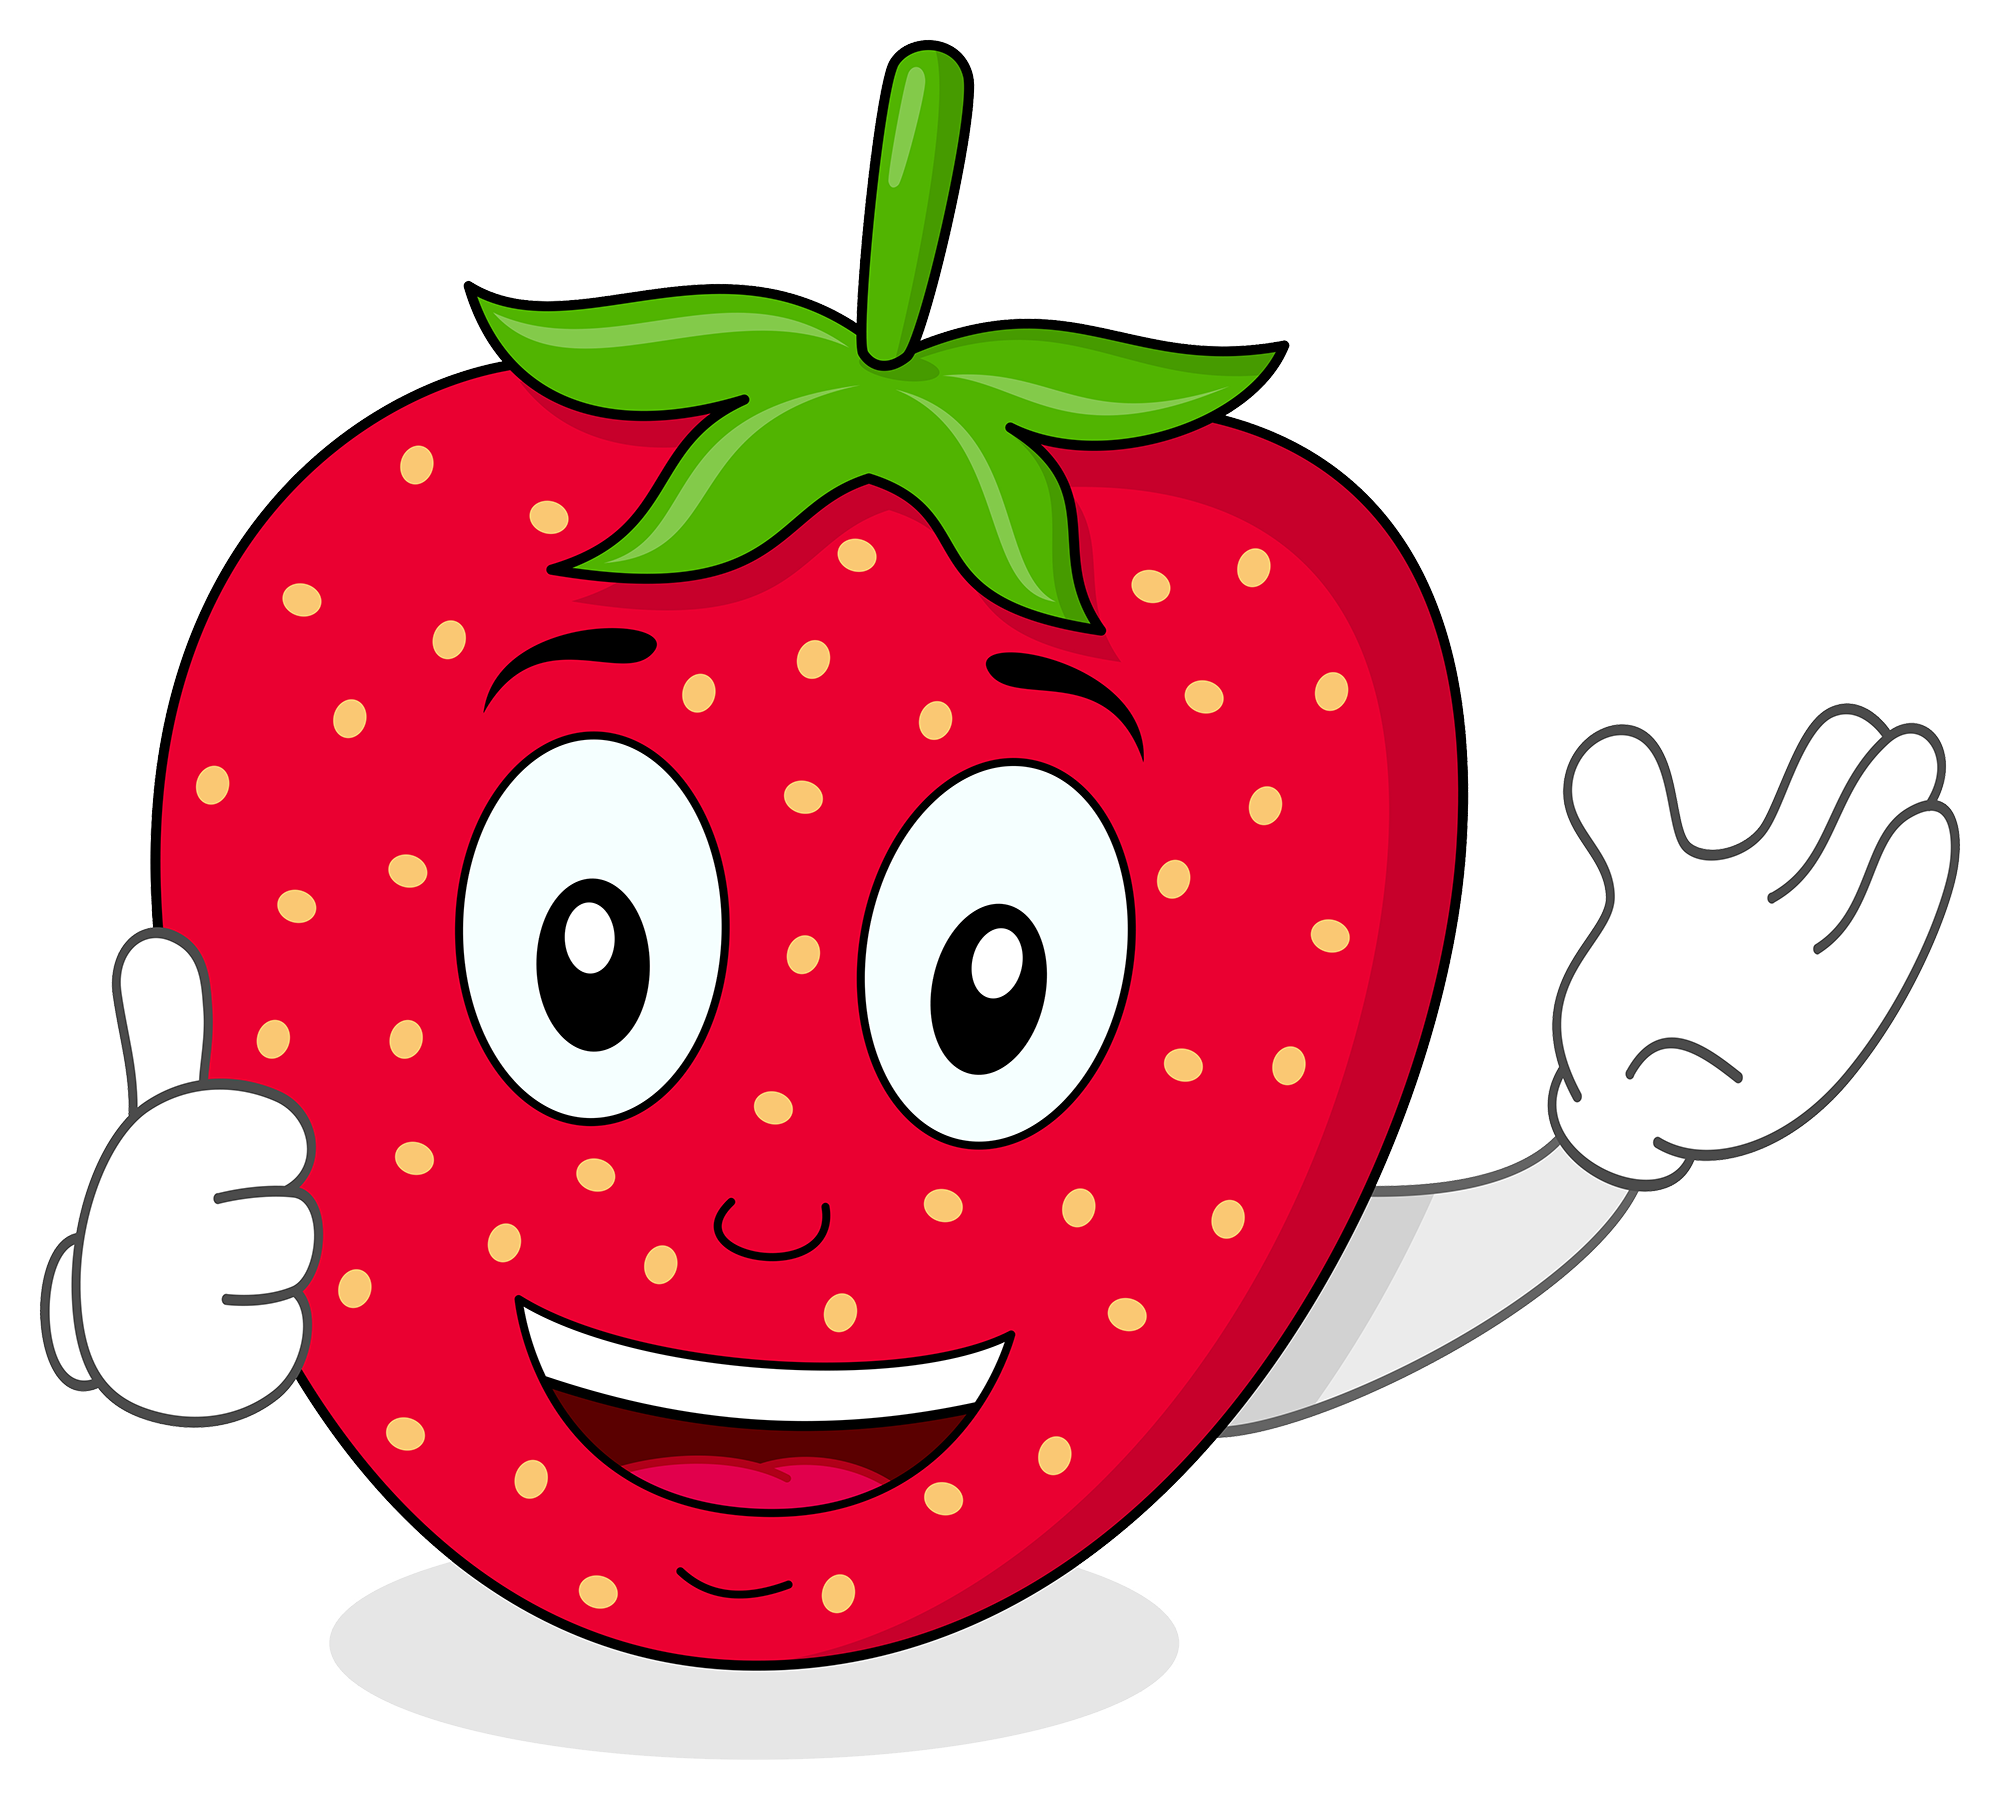 Funtime fruits tasty healthy. Strawberries clipart fun fruit